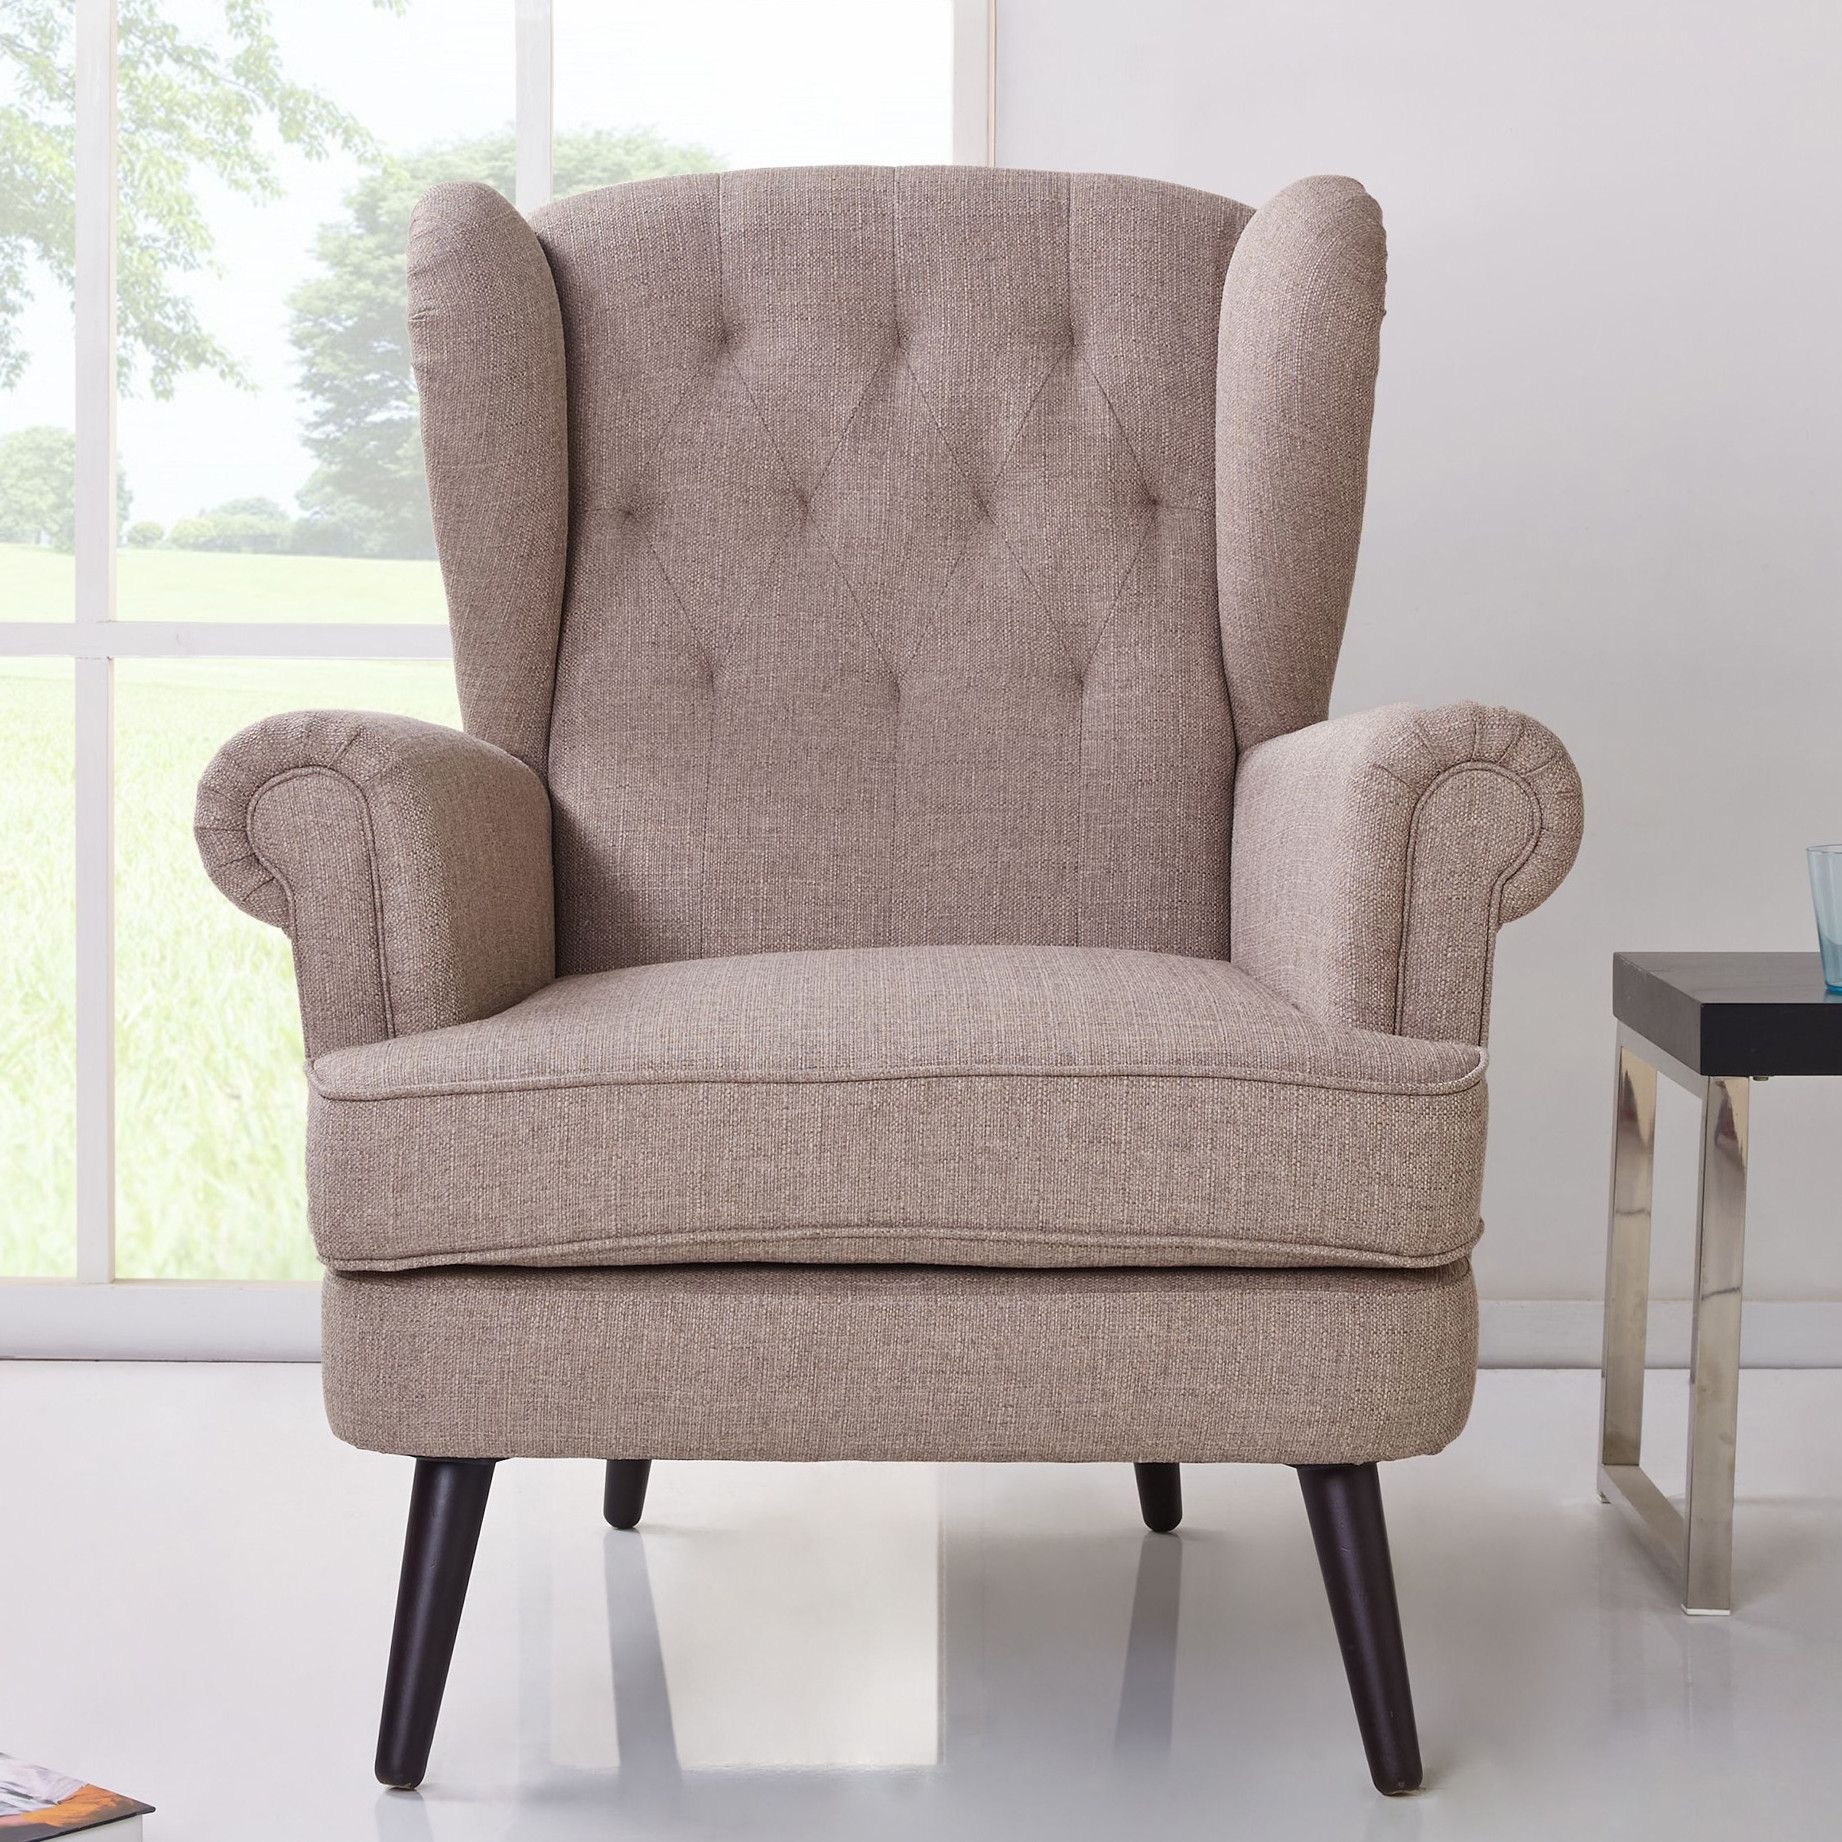 Lincoln Wingback Chair Armchairs for sale, Armchair